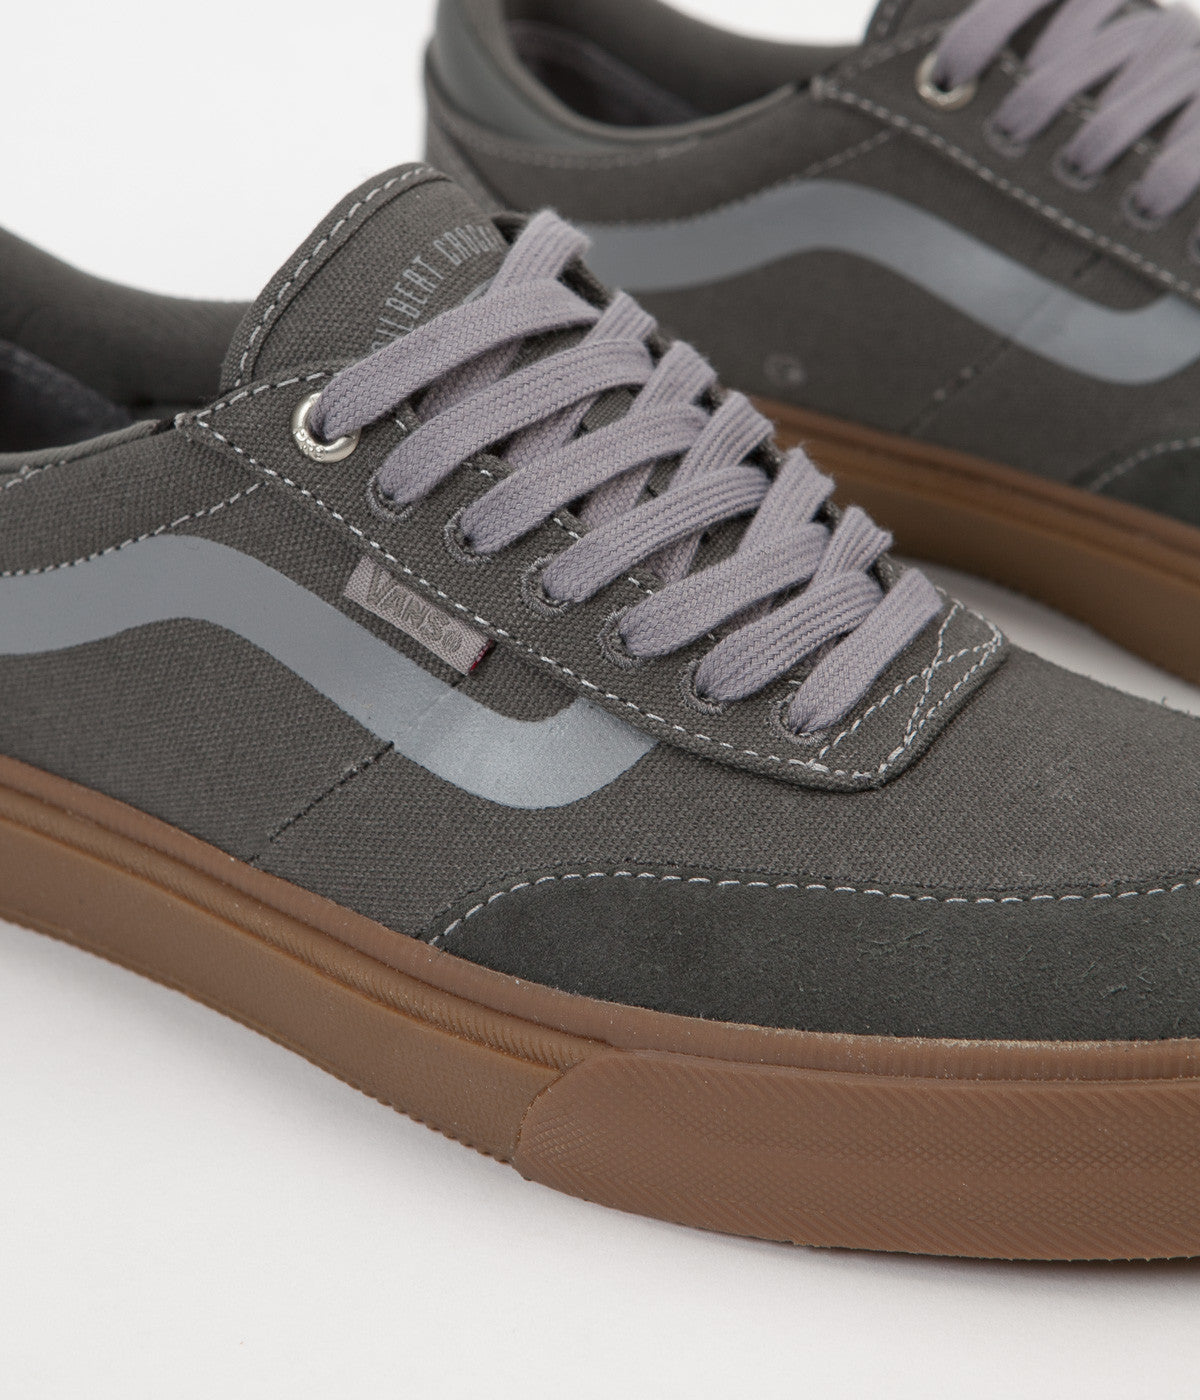 Vans Gilbert Crockett 2 Pro Shoes Gunmetal Gum | Flatspot